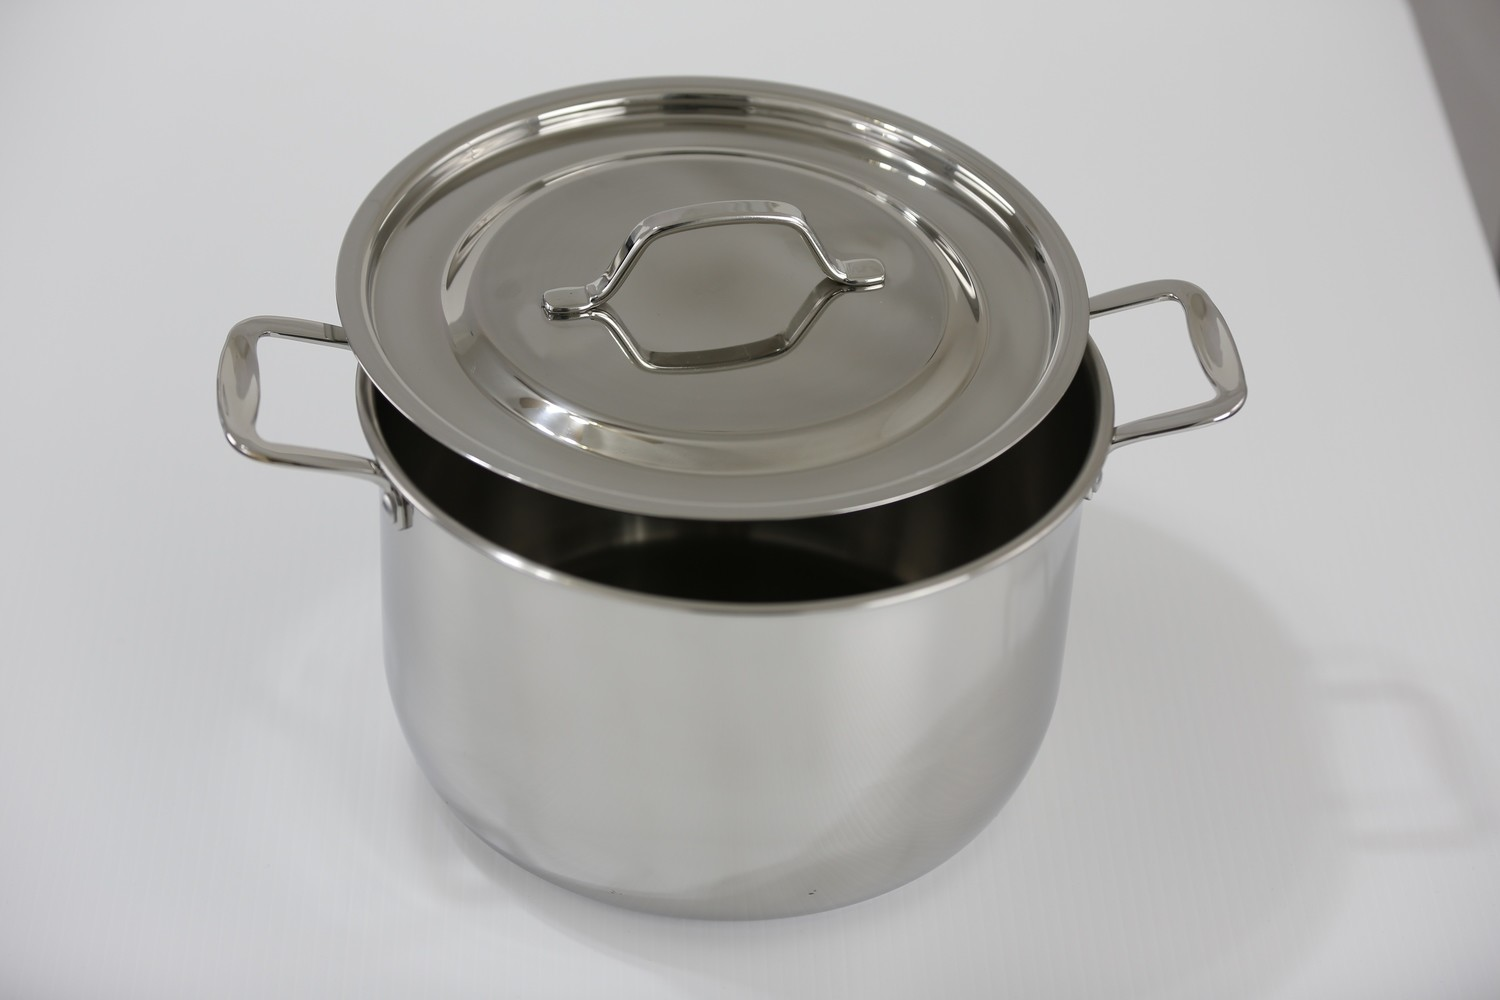 SS1-2.64 Qt. Stainless Steel tri-ply bottom induction Sauce Pot with cover